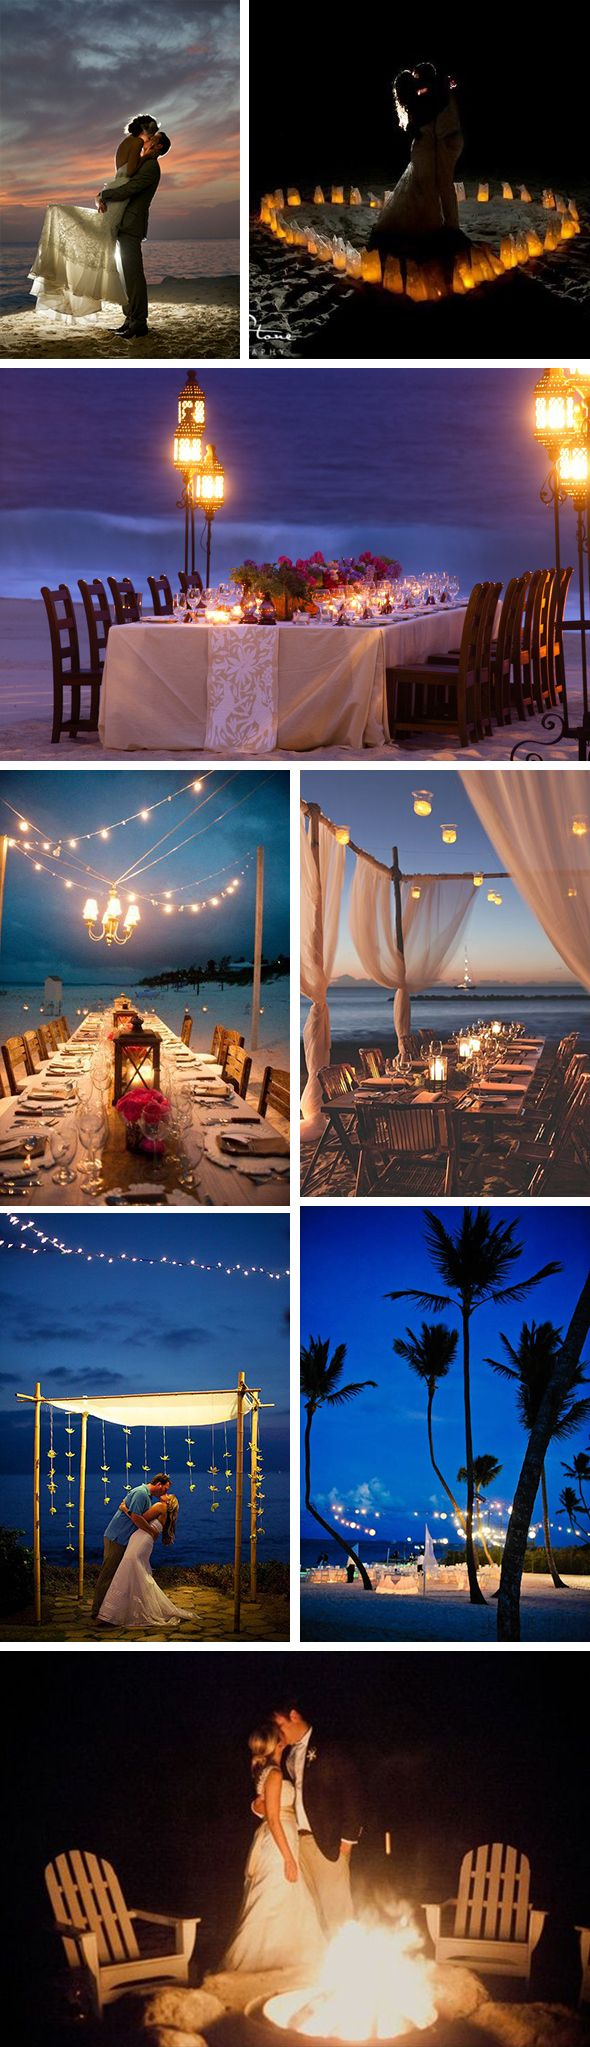 night beach weddings Beach Weddings at Night